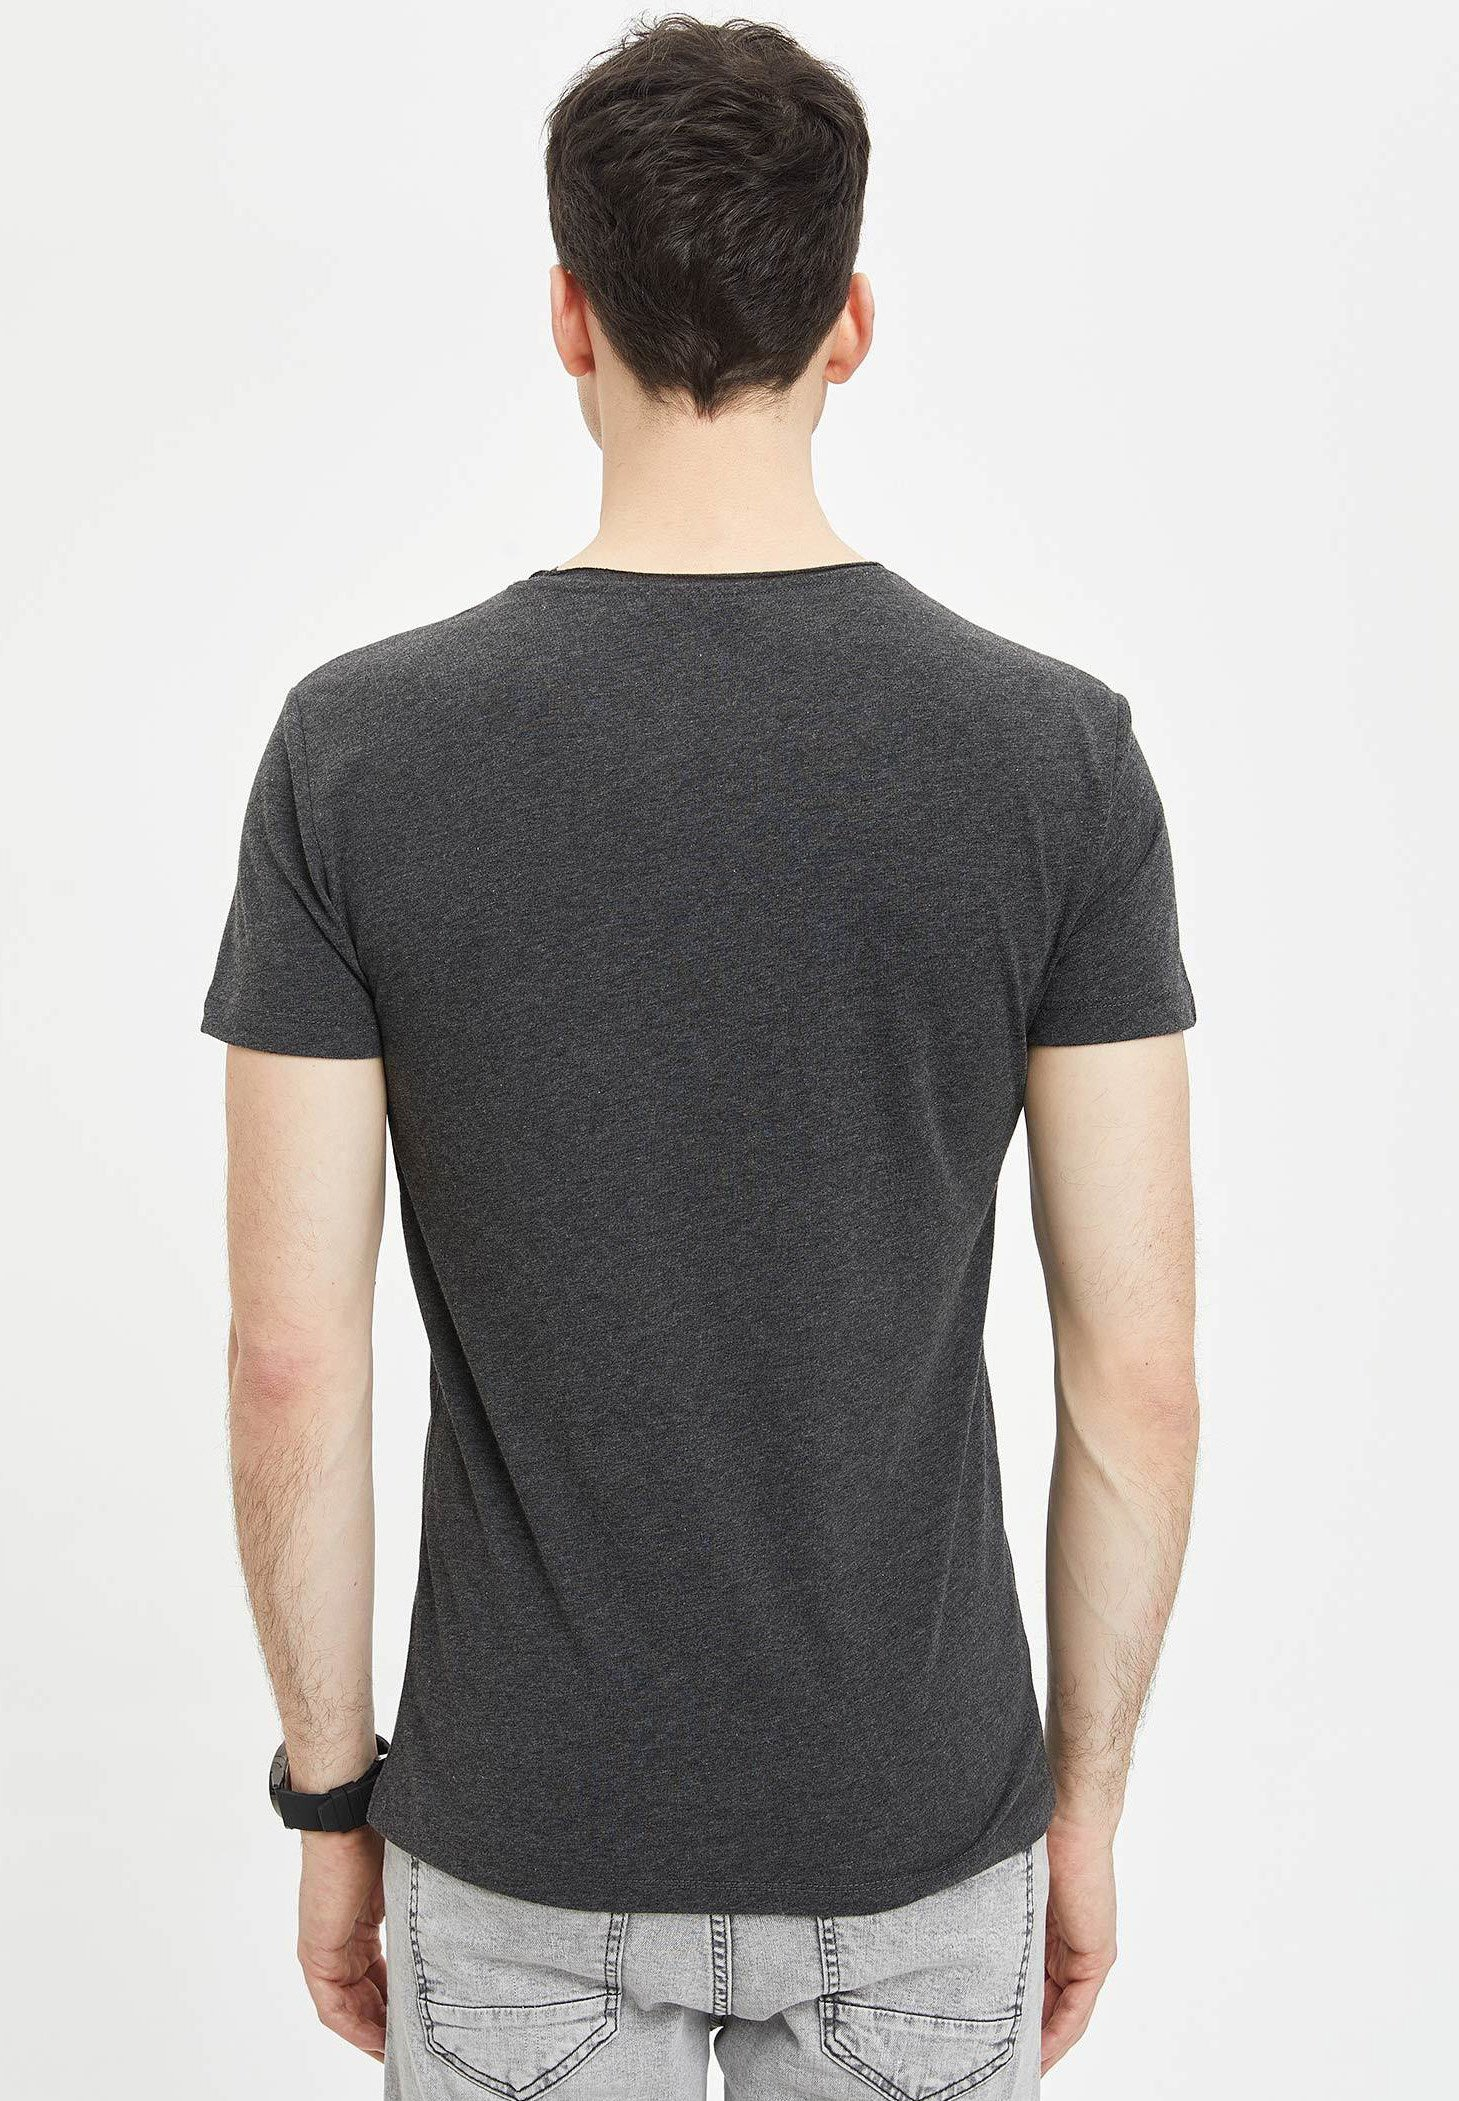 DeFacto Basic T-shirt - anthracite tp2OY